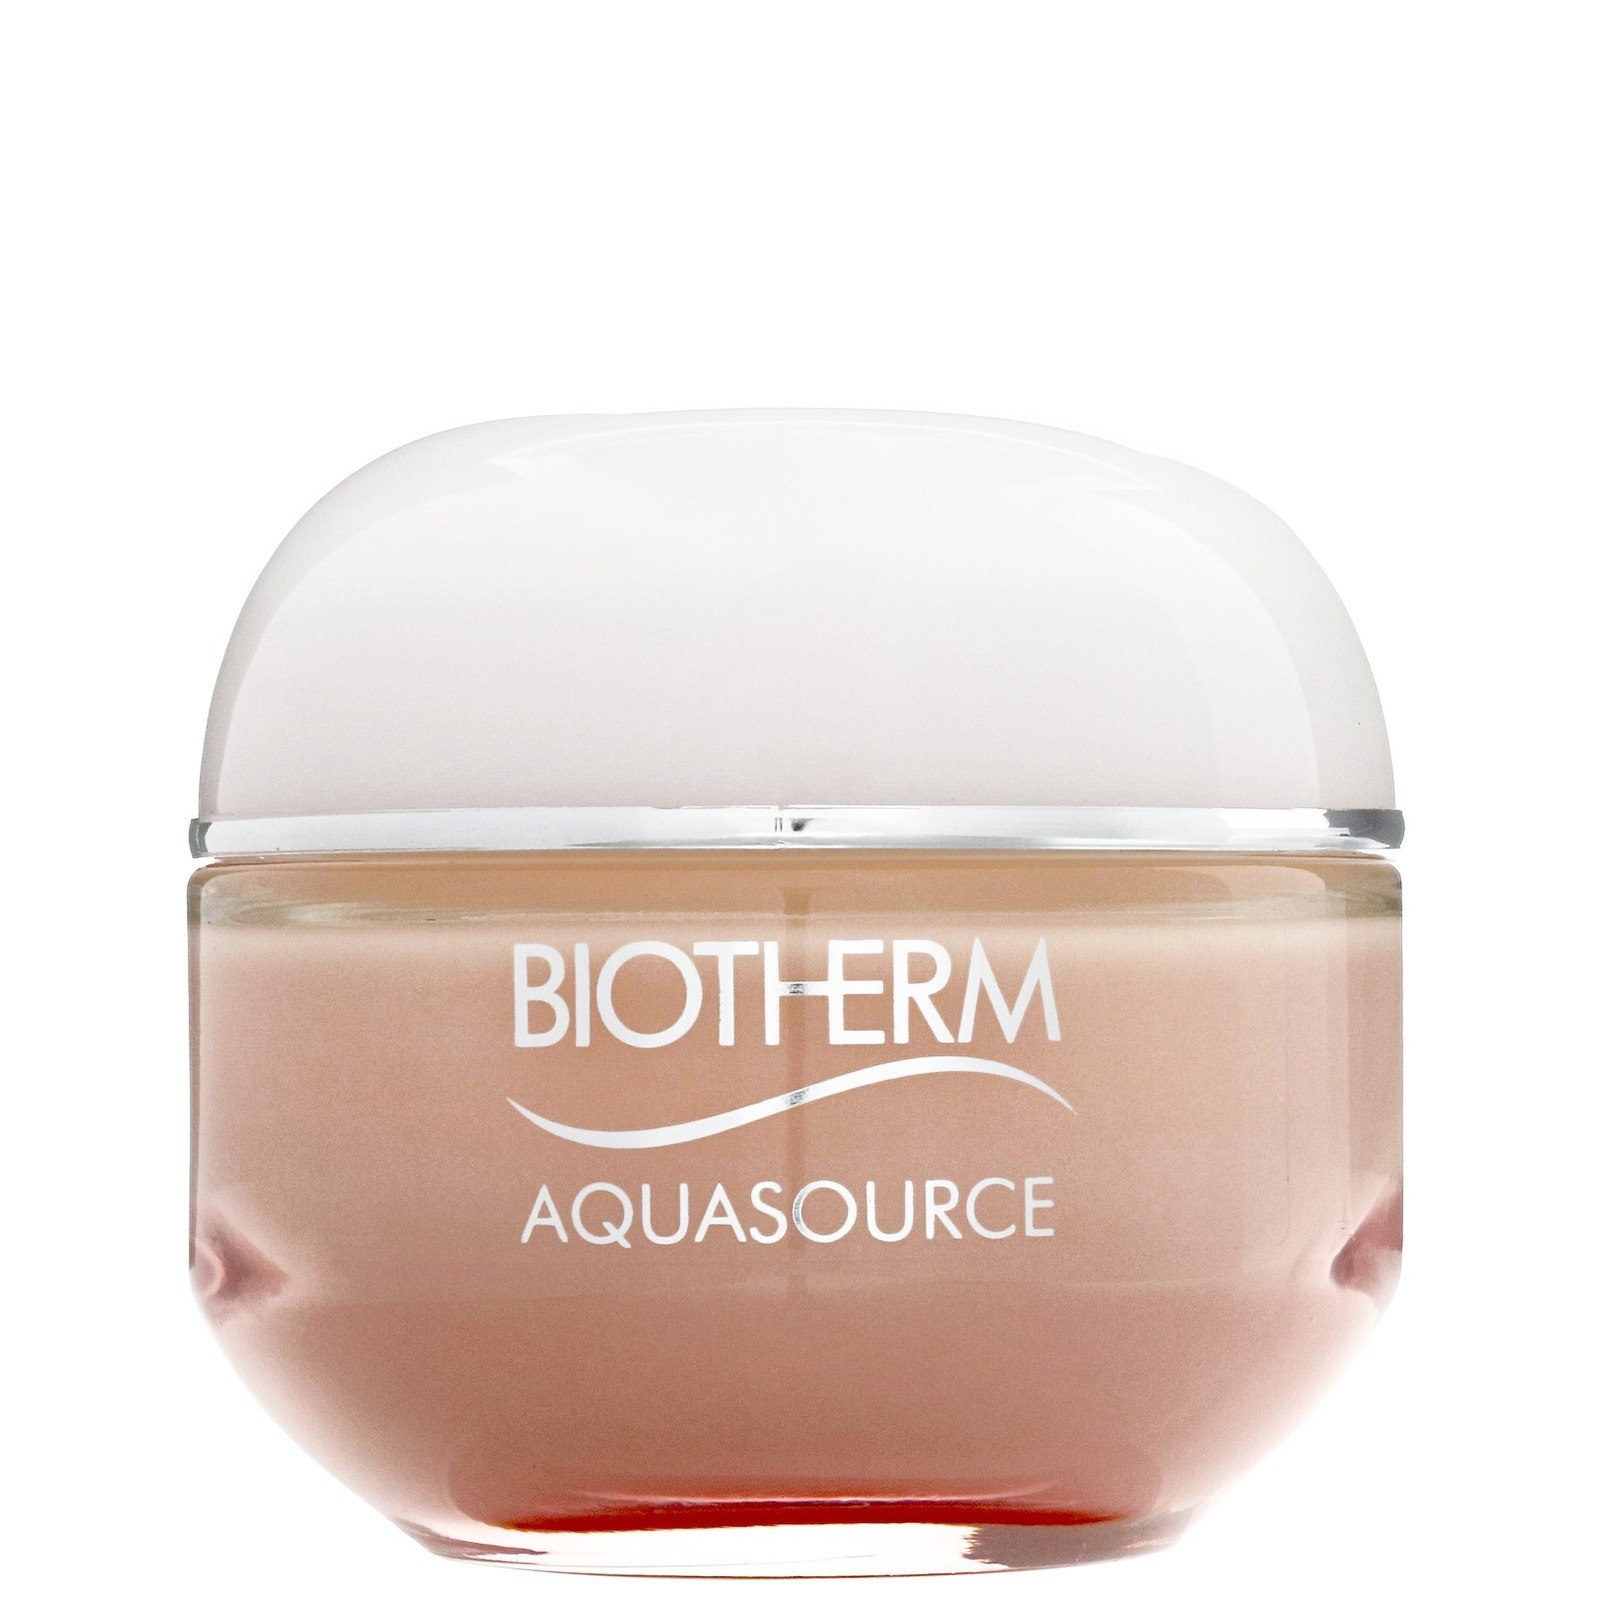 Biotherm Aquasource Rich Cream 48h Continuous Release Hydration For Dry Skin 50ml